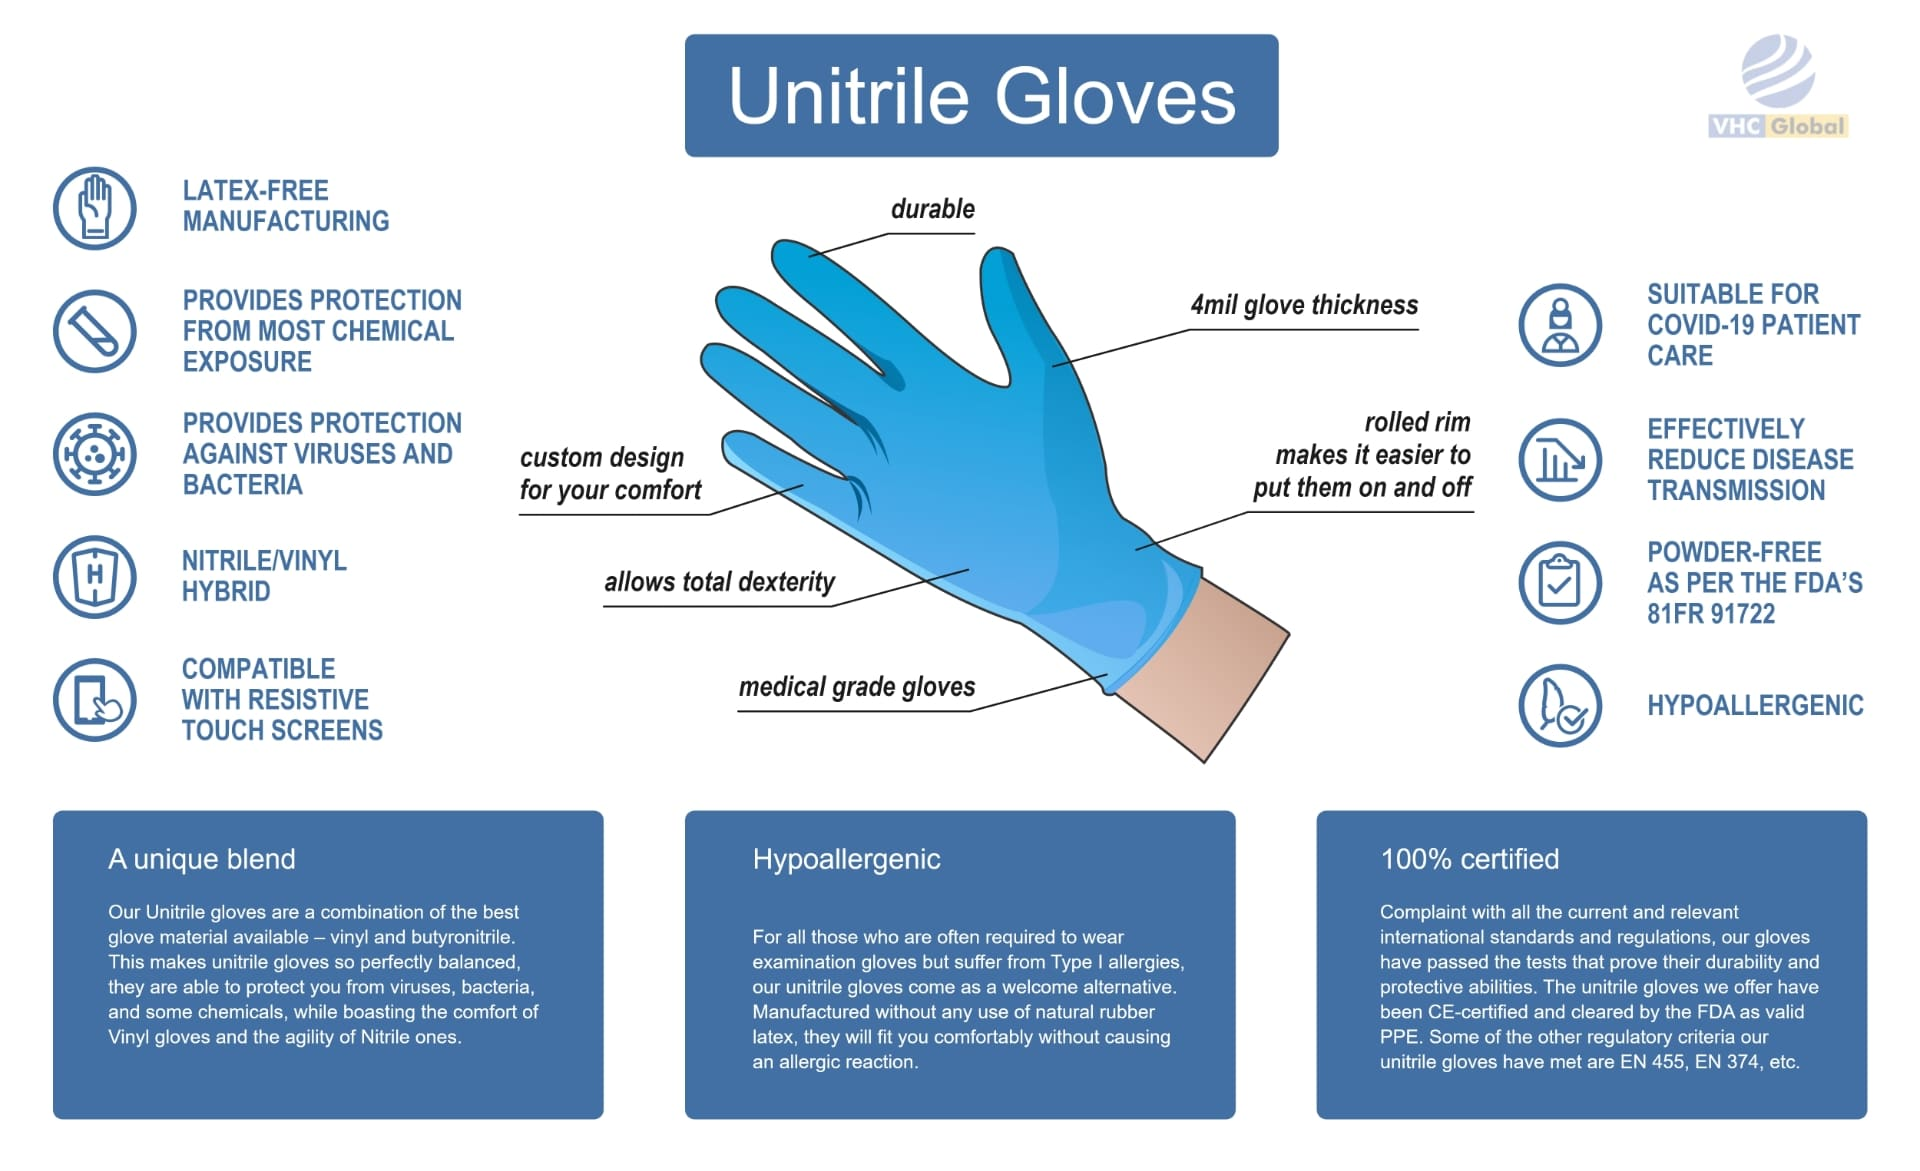 Unitrile gloves infographic. Everything you need to know about Unitirile Gloves. LATEX-FREE MANUFACTURING, PROVIDES PROTECTION FROM MOST CHEMICAL EXPOSURE, PROVIDES PROTECTION AGAINST VIRUSES AND BACTERIA, NITRILE/VINYL HYBRID, COMPATIBLE WITH RESISTIVE TOUCH SCREENS, durable, SUITABLE FOR COVID-19 PATIENT CARE, EFFECTIVELY REDUCE DISEASE TRANSMISSION, POWDER-FREE AS PER THE FDA'S 81FR 91722, HYPOALLERGENIC